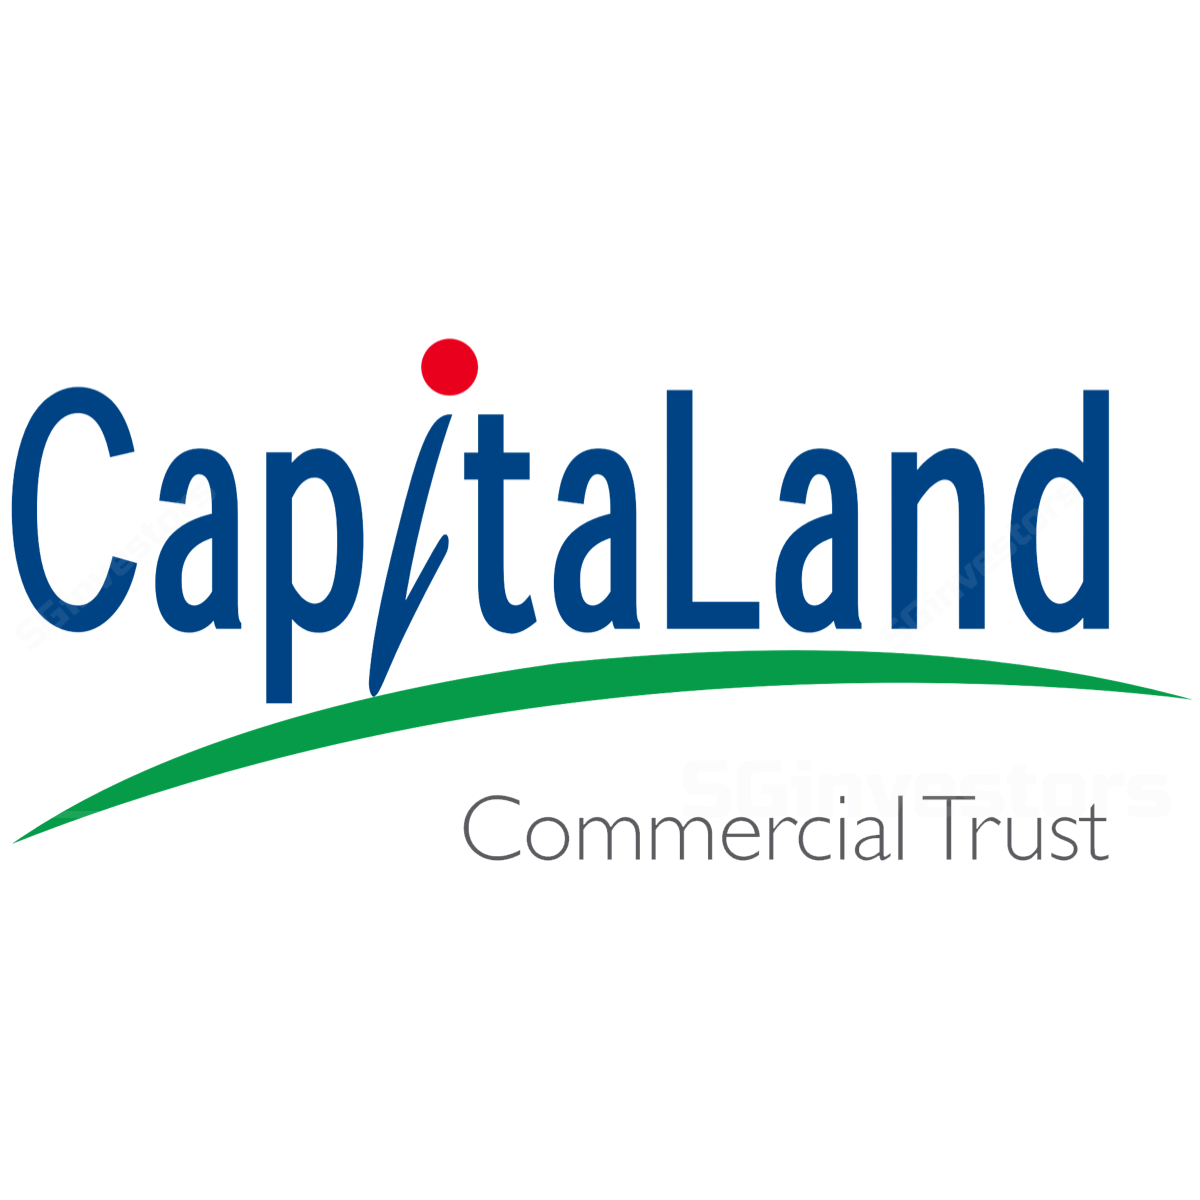 CapitaLand Commercial Trust (CCT SP) - DBS Vickers 2017-05-02: